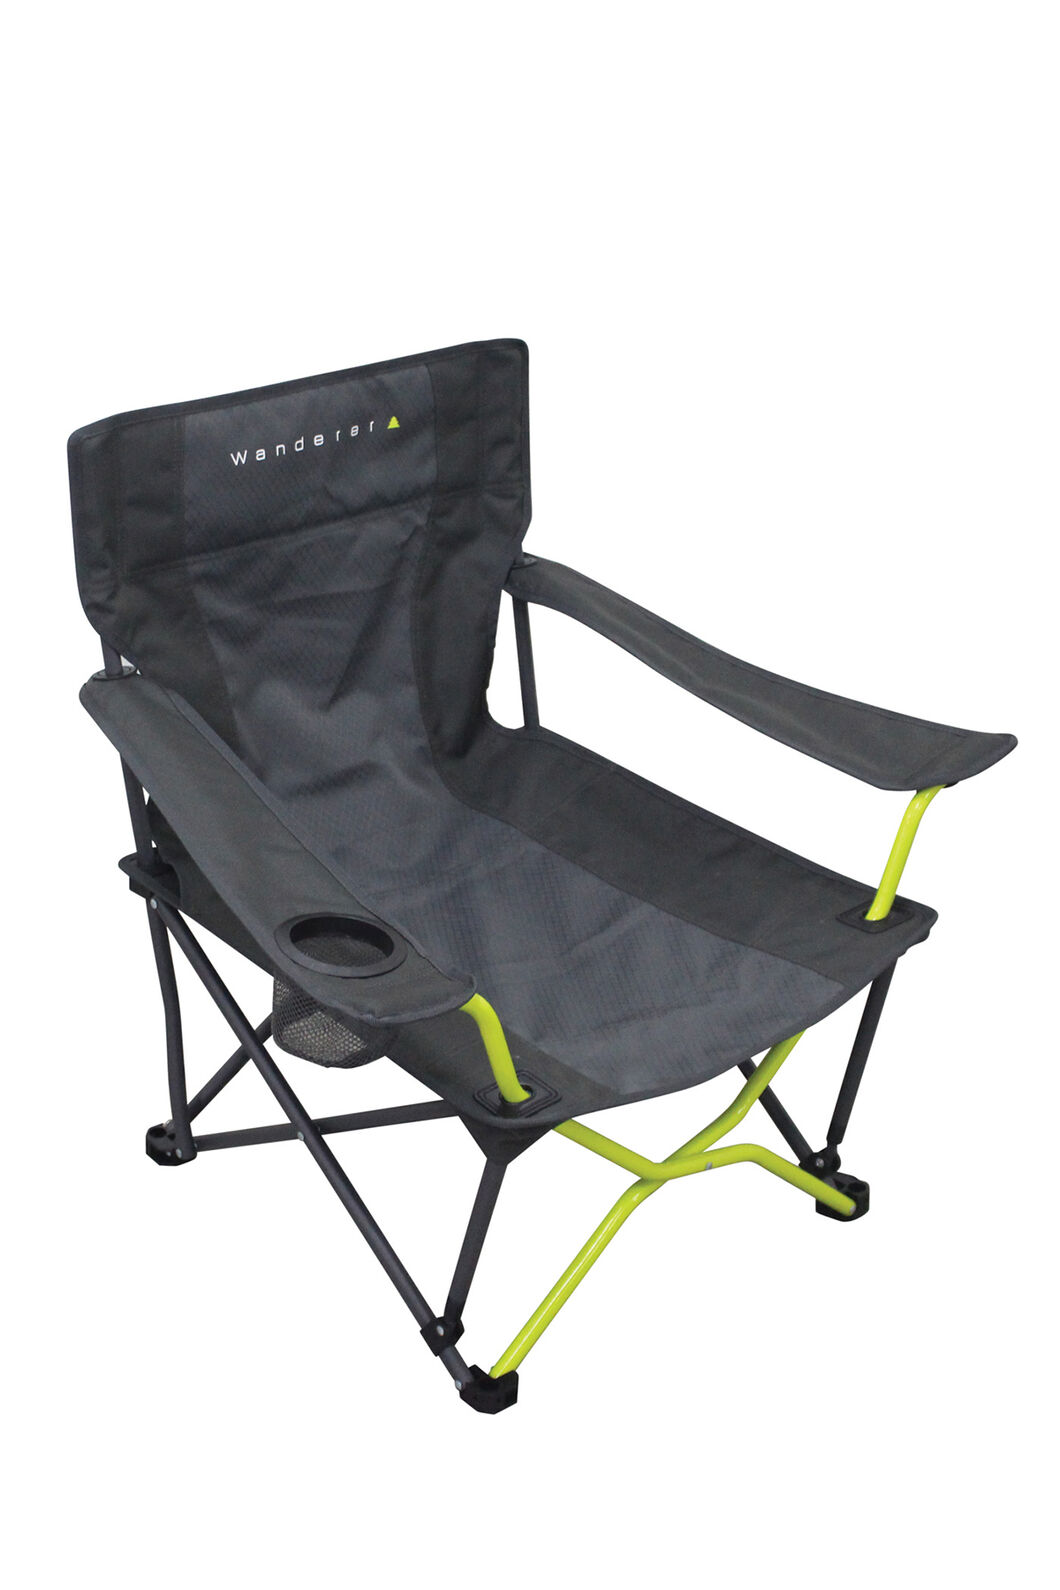 Wanderer Event Quad Folding Chair, None, hi-res